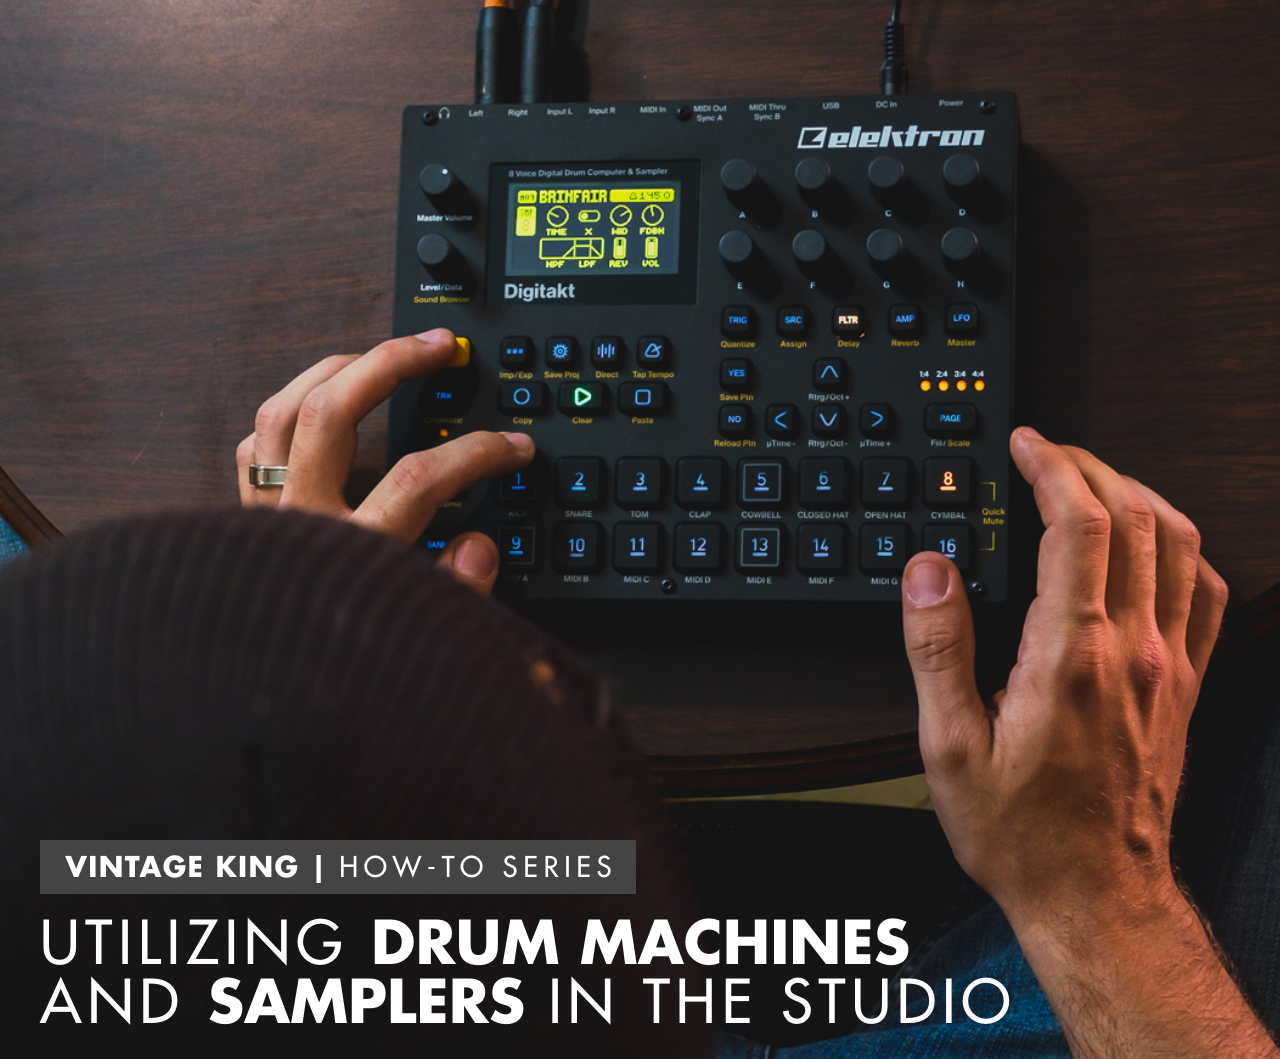 How To Utilize Drum Machines And Samplers In The Studio